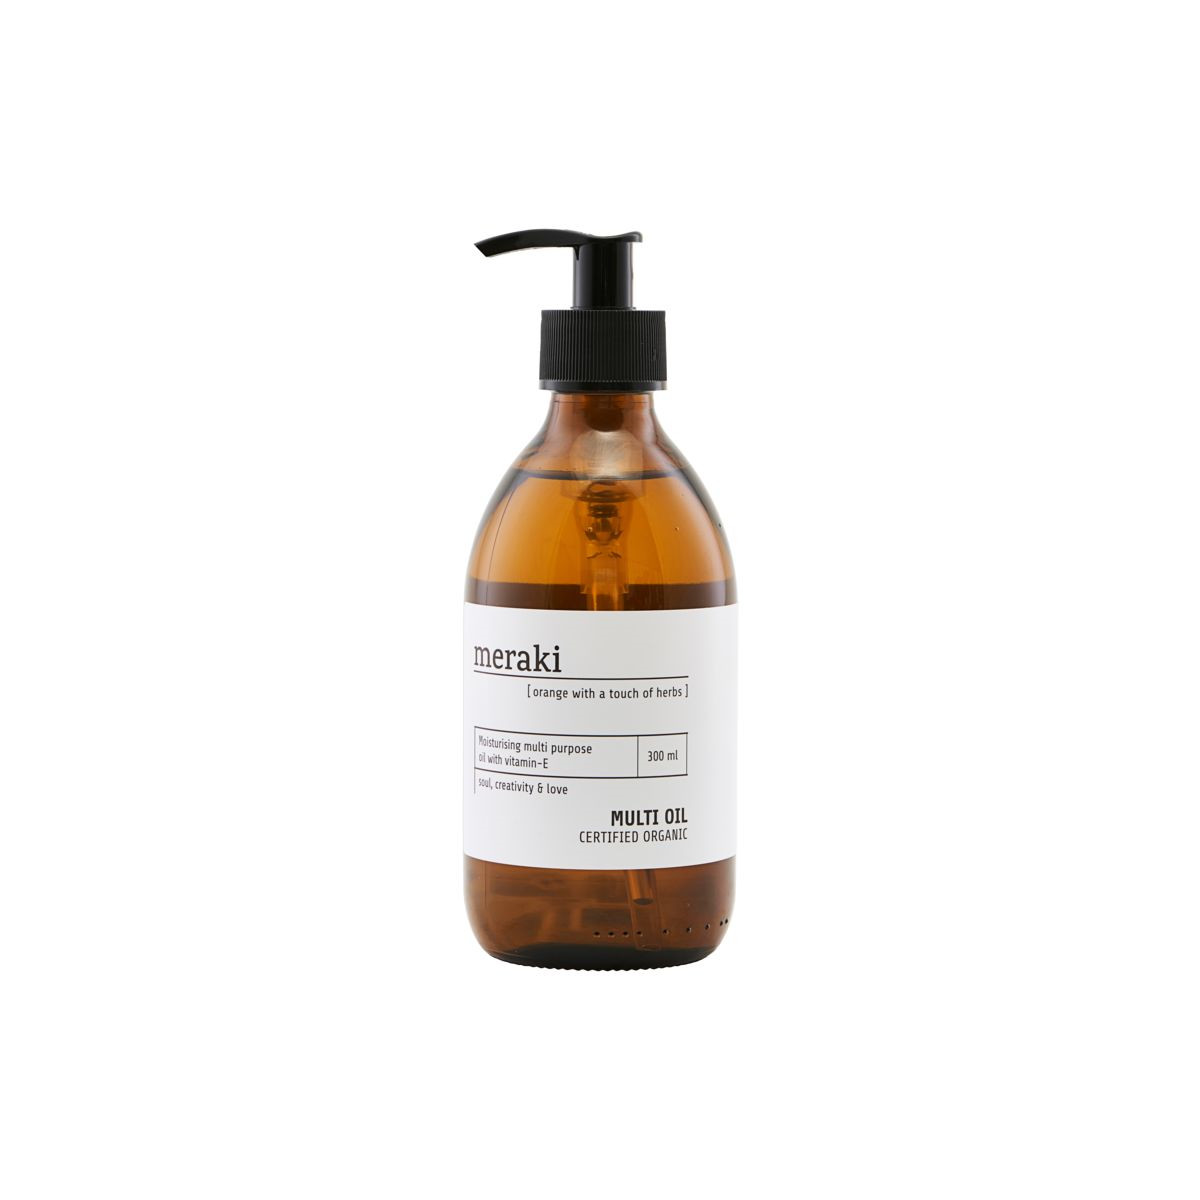 Meraki Multi Oil Orange & Herbs